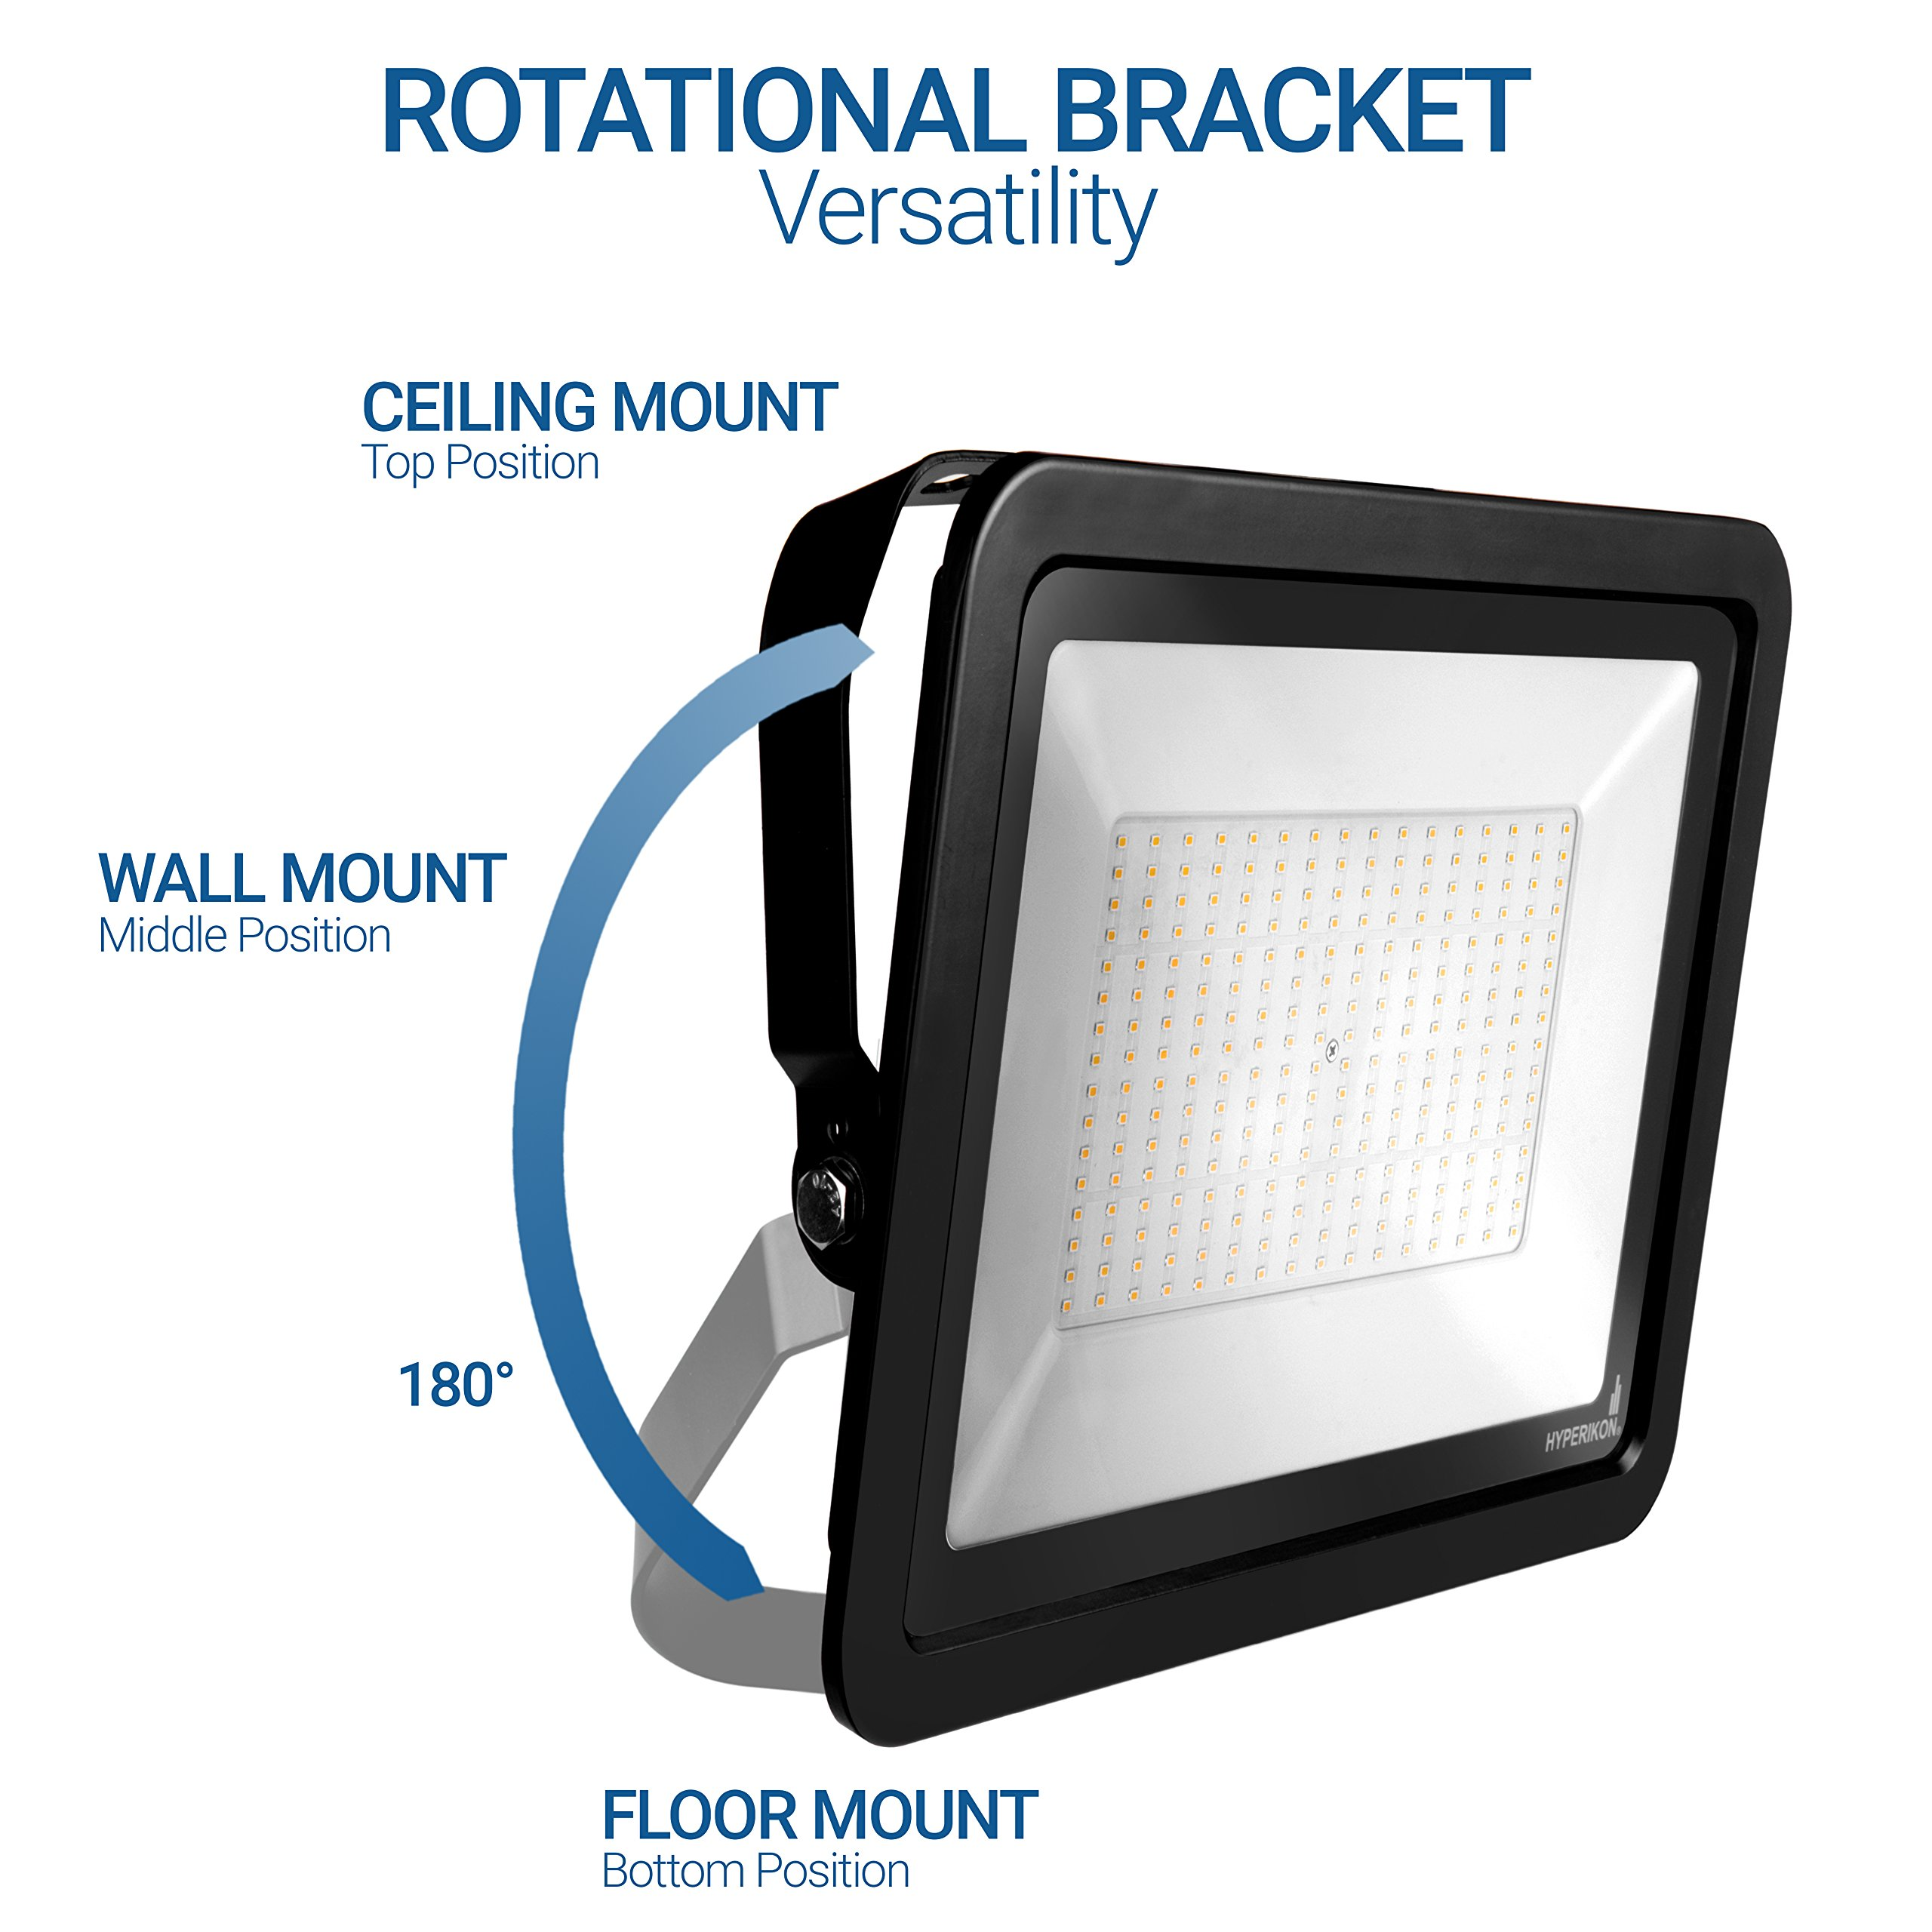 Hyperikon LED Flood Light 200W (1000 Watt Eq.) 180° Rotatable Bracket, 5000k,16000 Lm, Super Bright Outdoor LED Floodlight, Weatherproof IP65, Suitable for Dry and Damp Locations, 110V, 2-Pack by Hyperikon (Image #6)